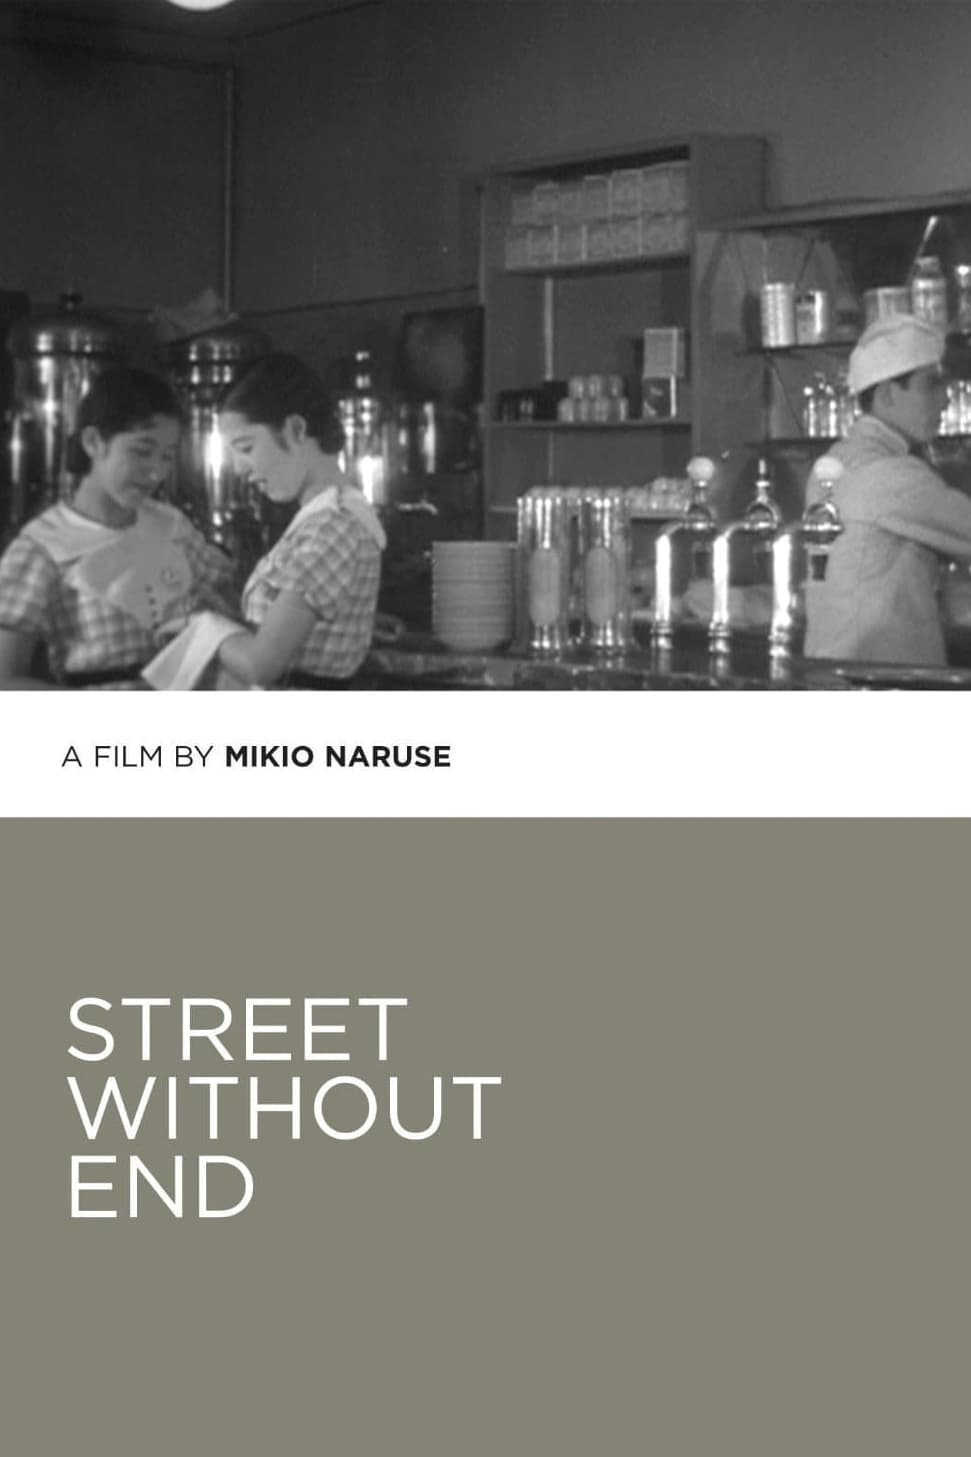 Street Without End (1934)